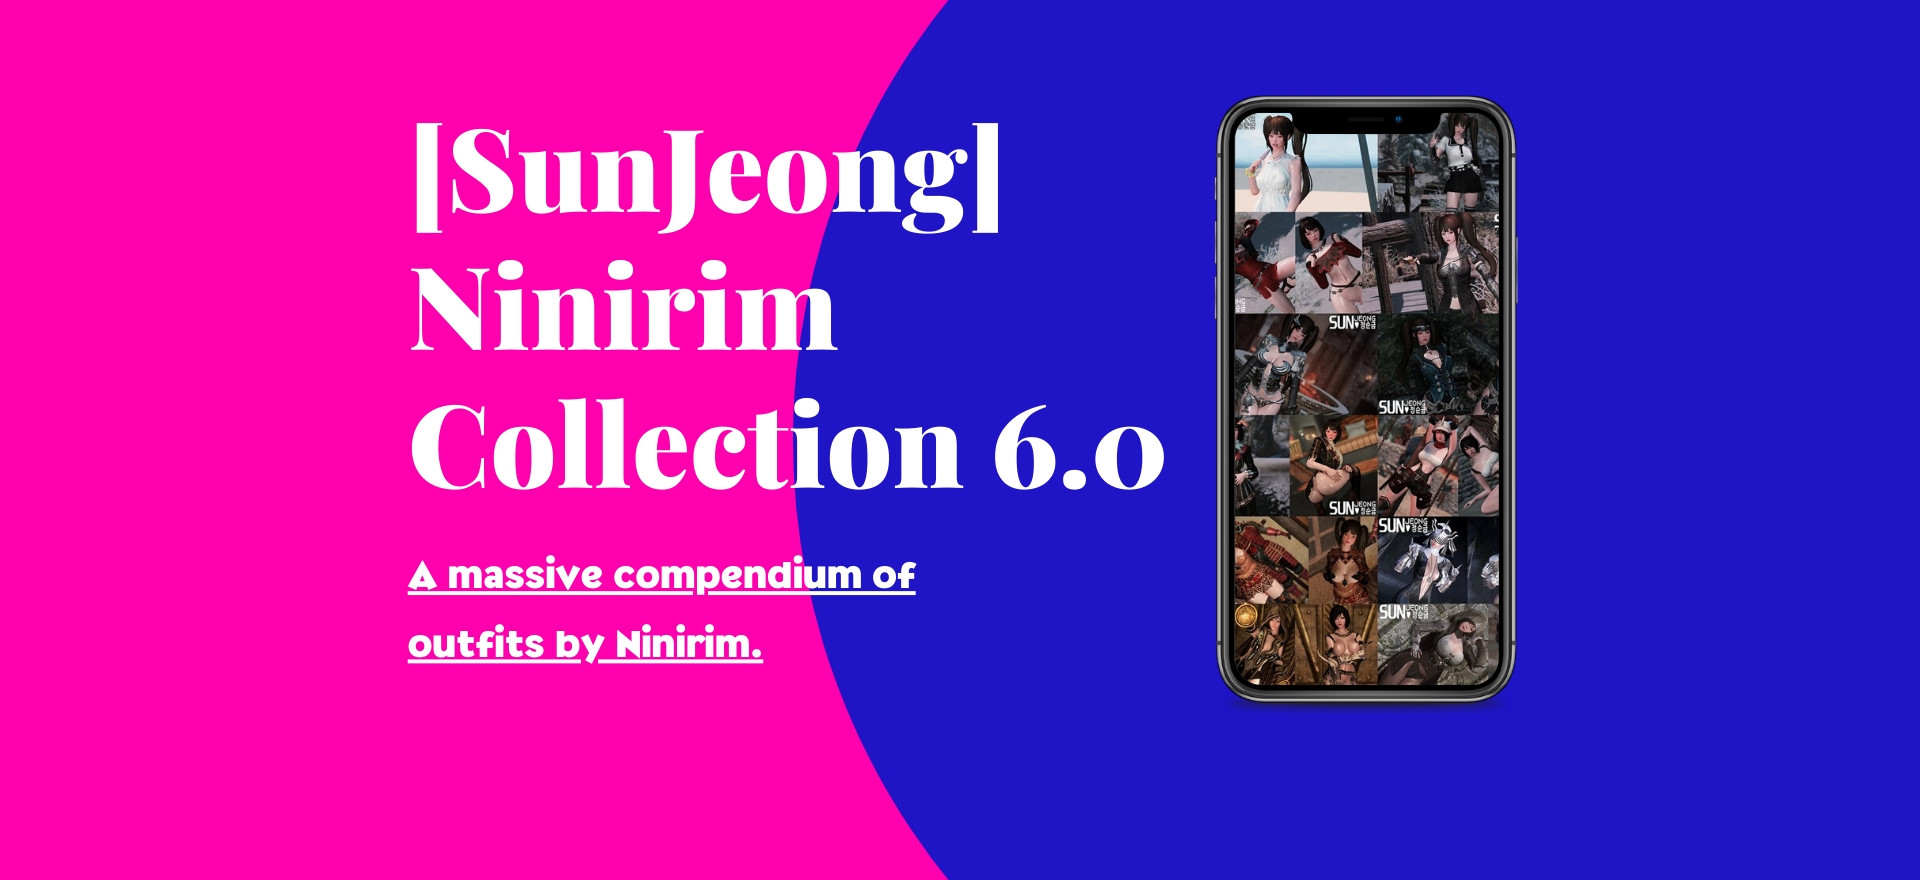 [SunJeong] Ninirim Collection 6.0